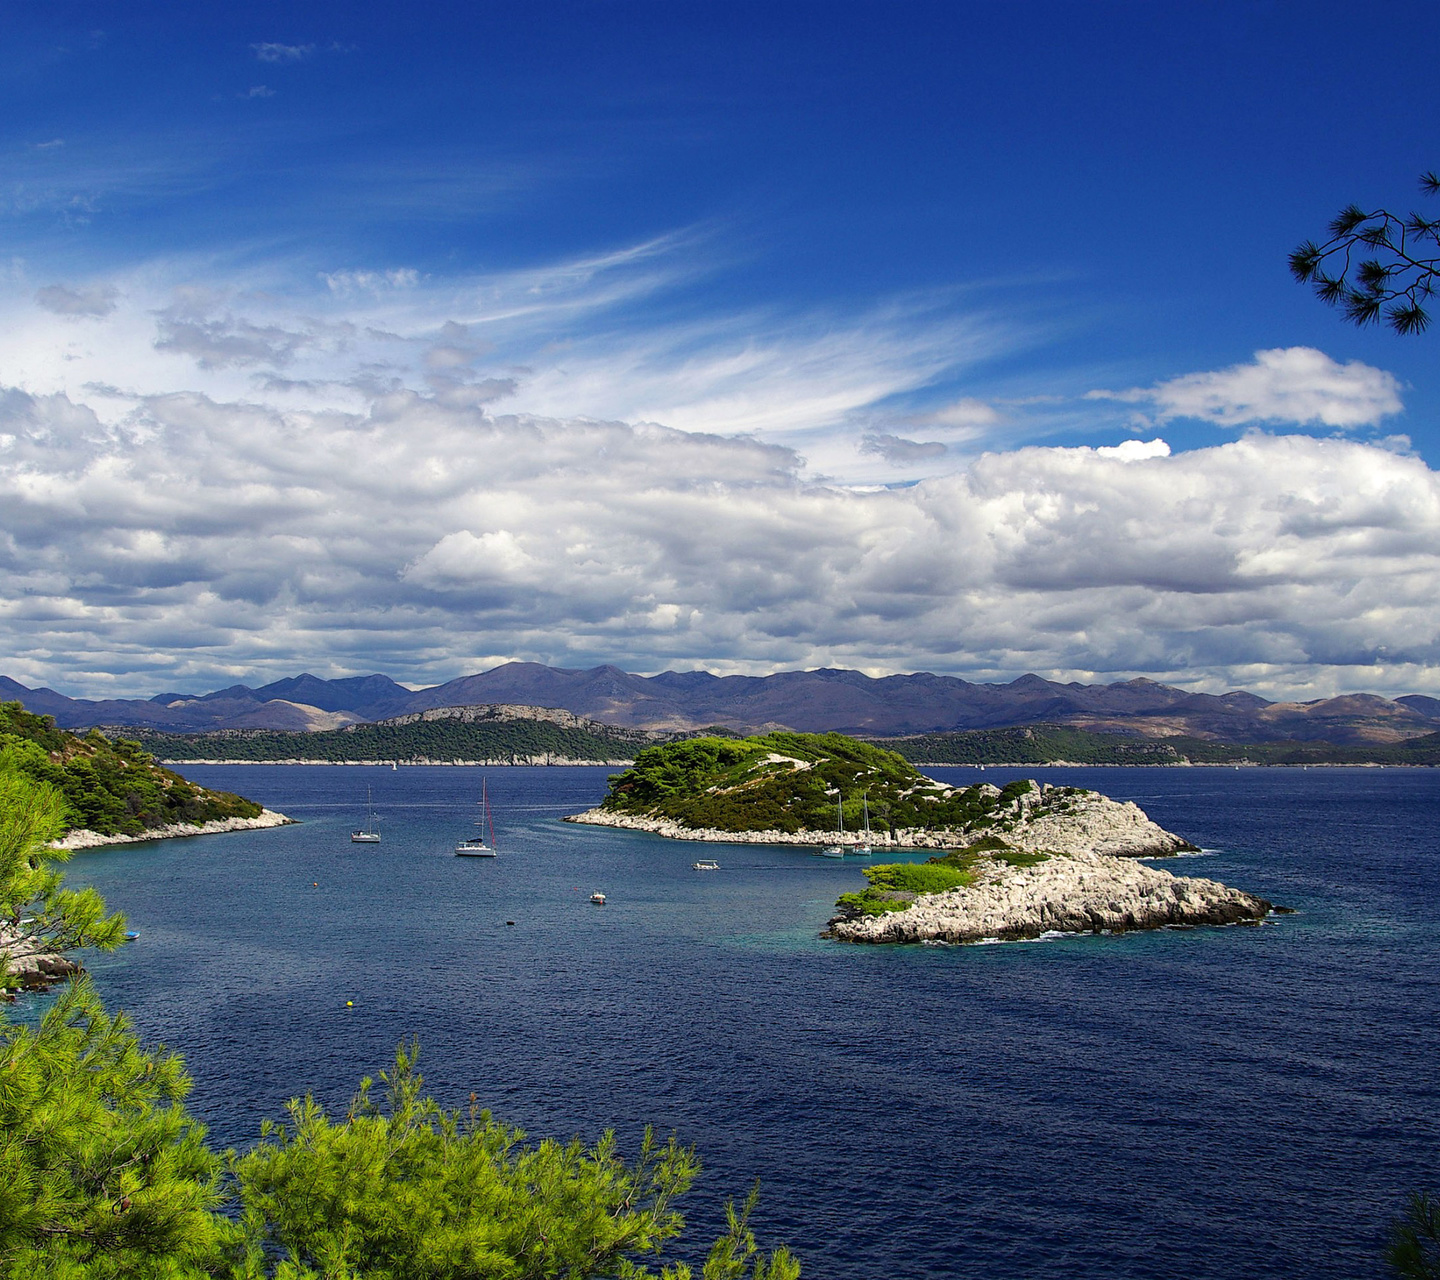 Unique Beauty Of The Island Mljet Croatia Wallpaper